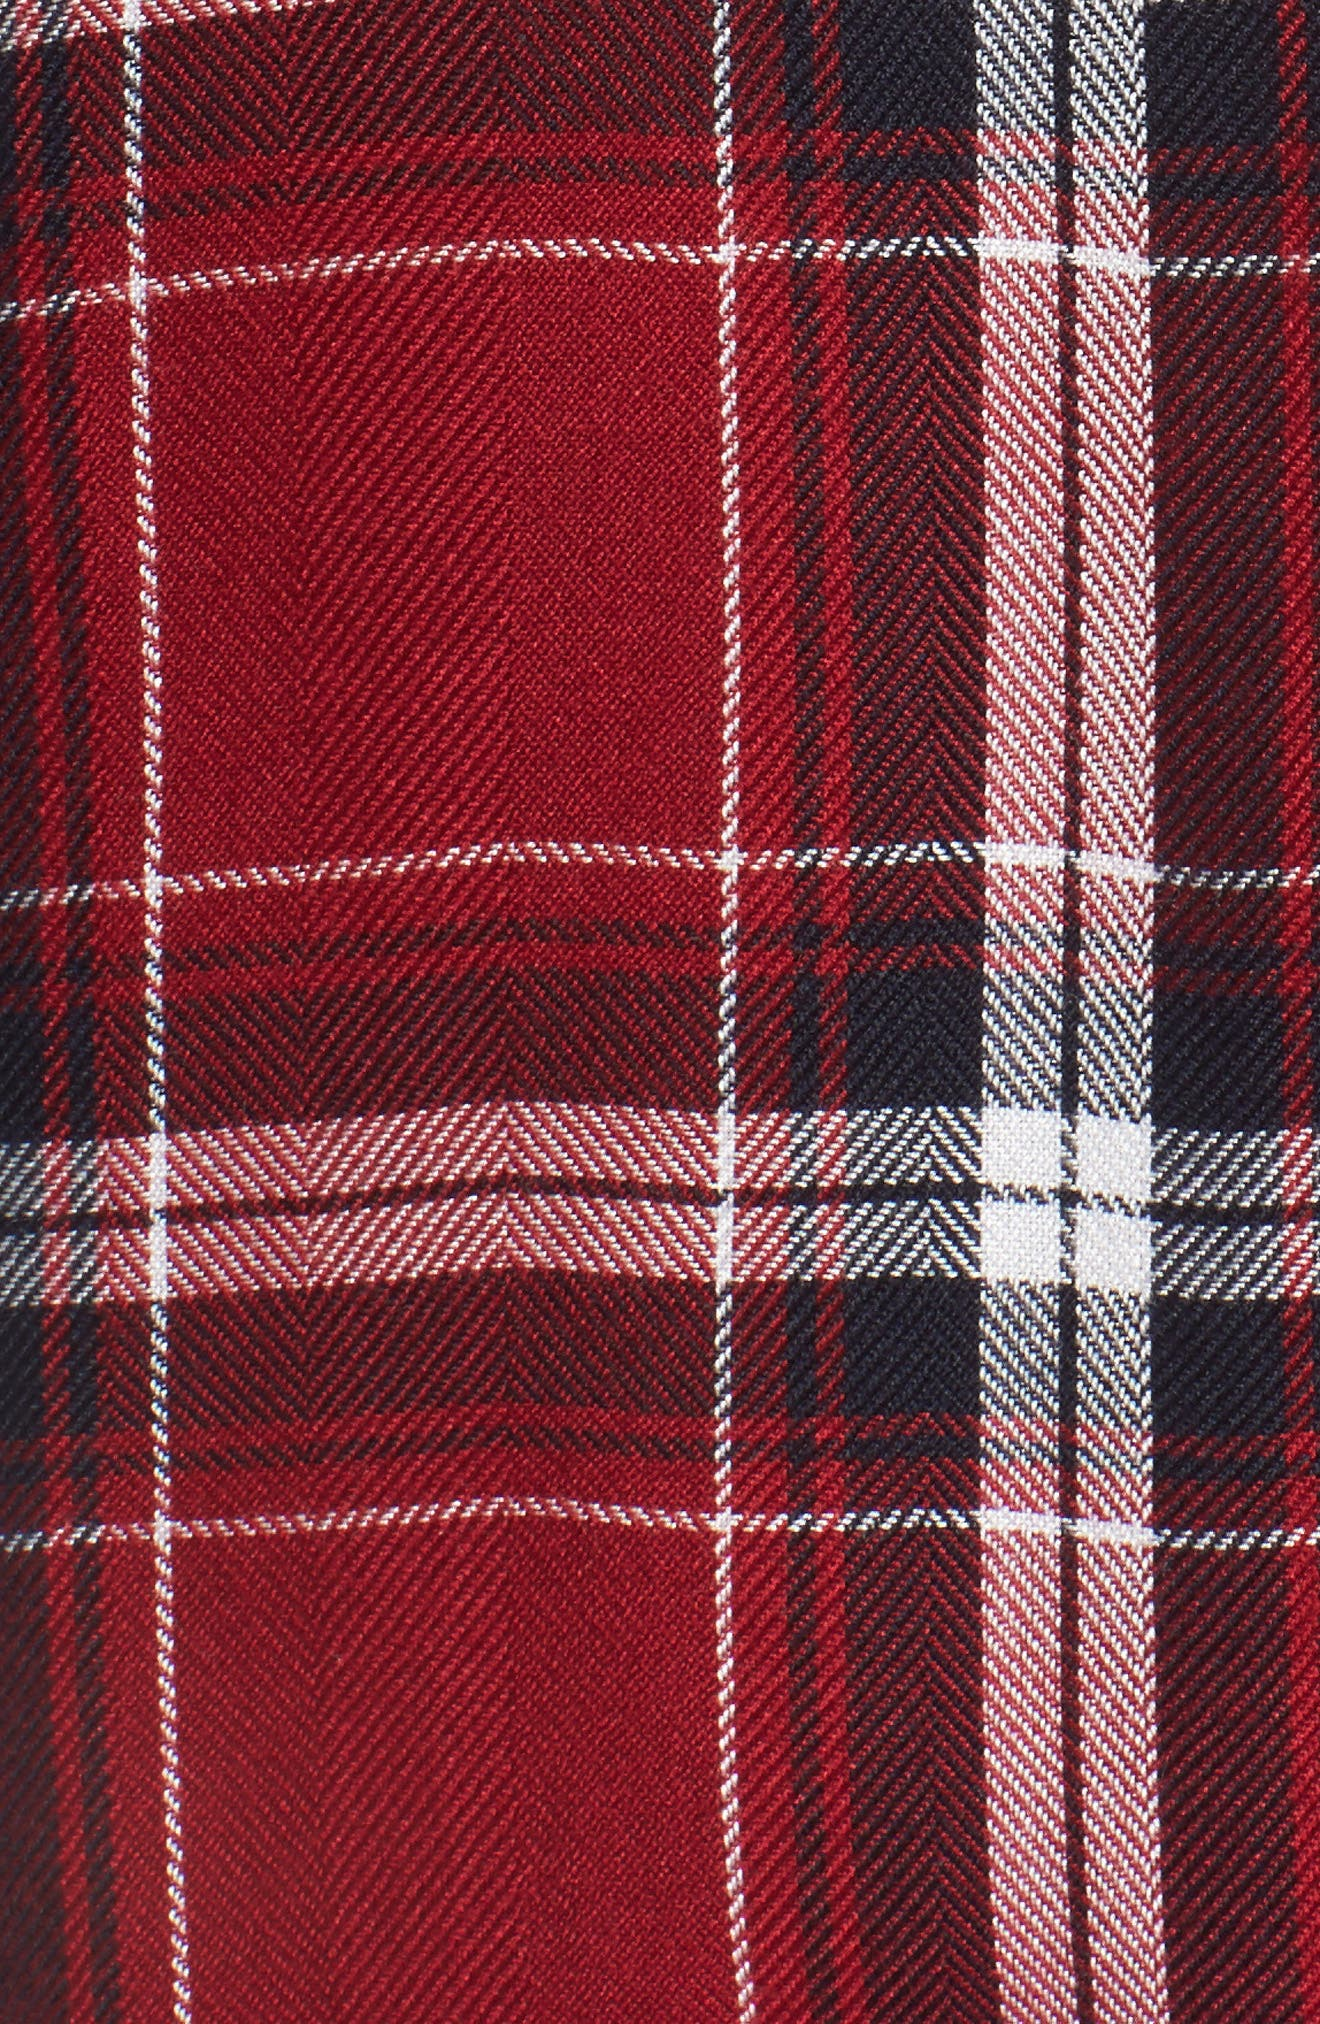 Hunter Plaid Shirt,                             Alternate thumbnail 6, color,                             Cranberry Ink